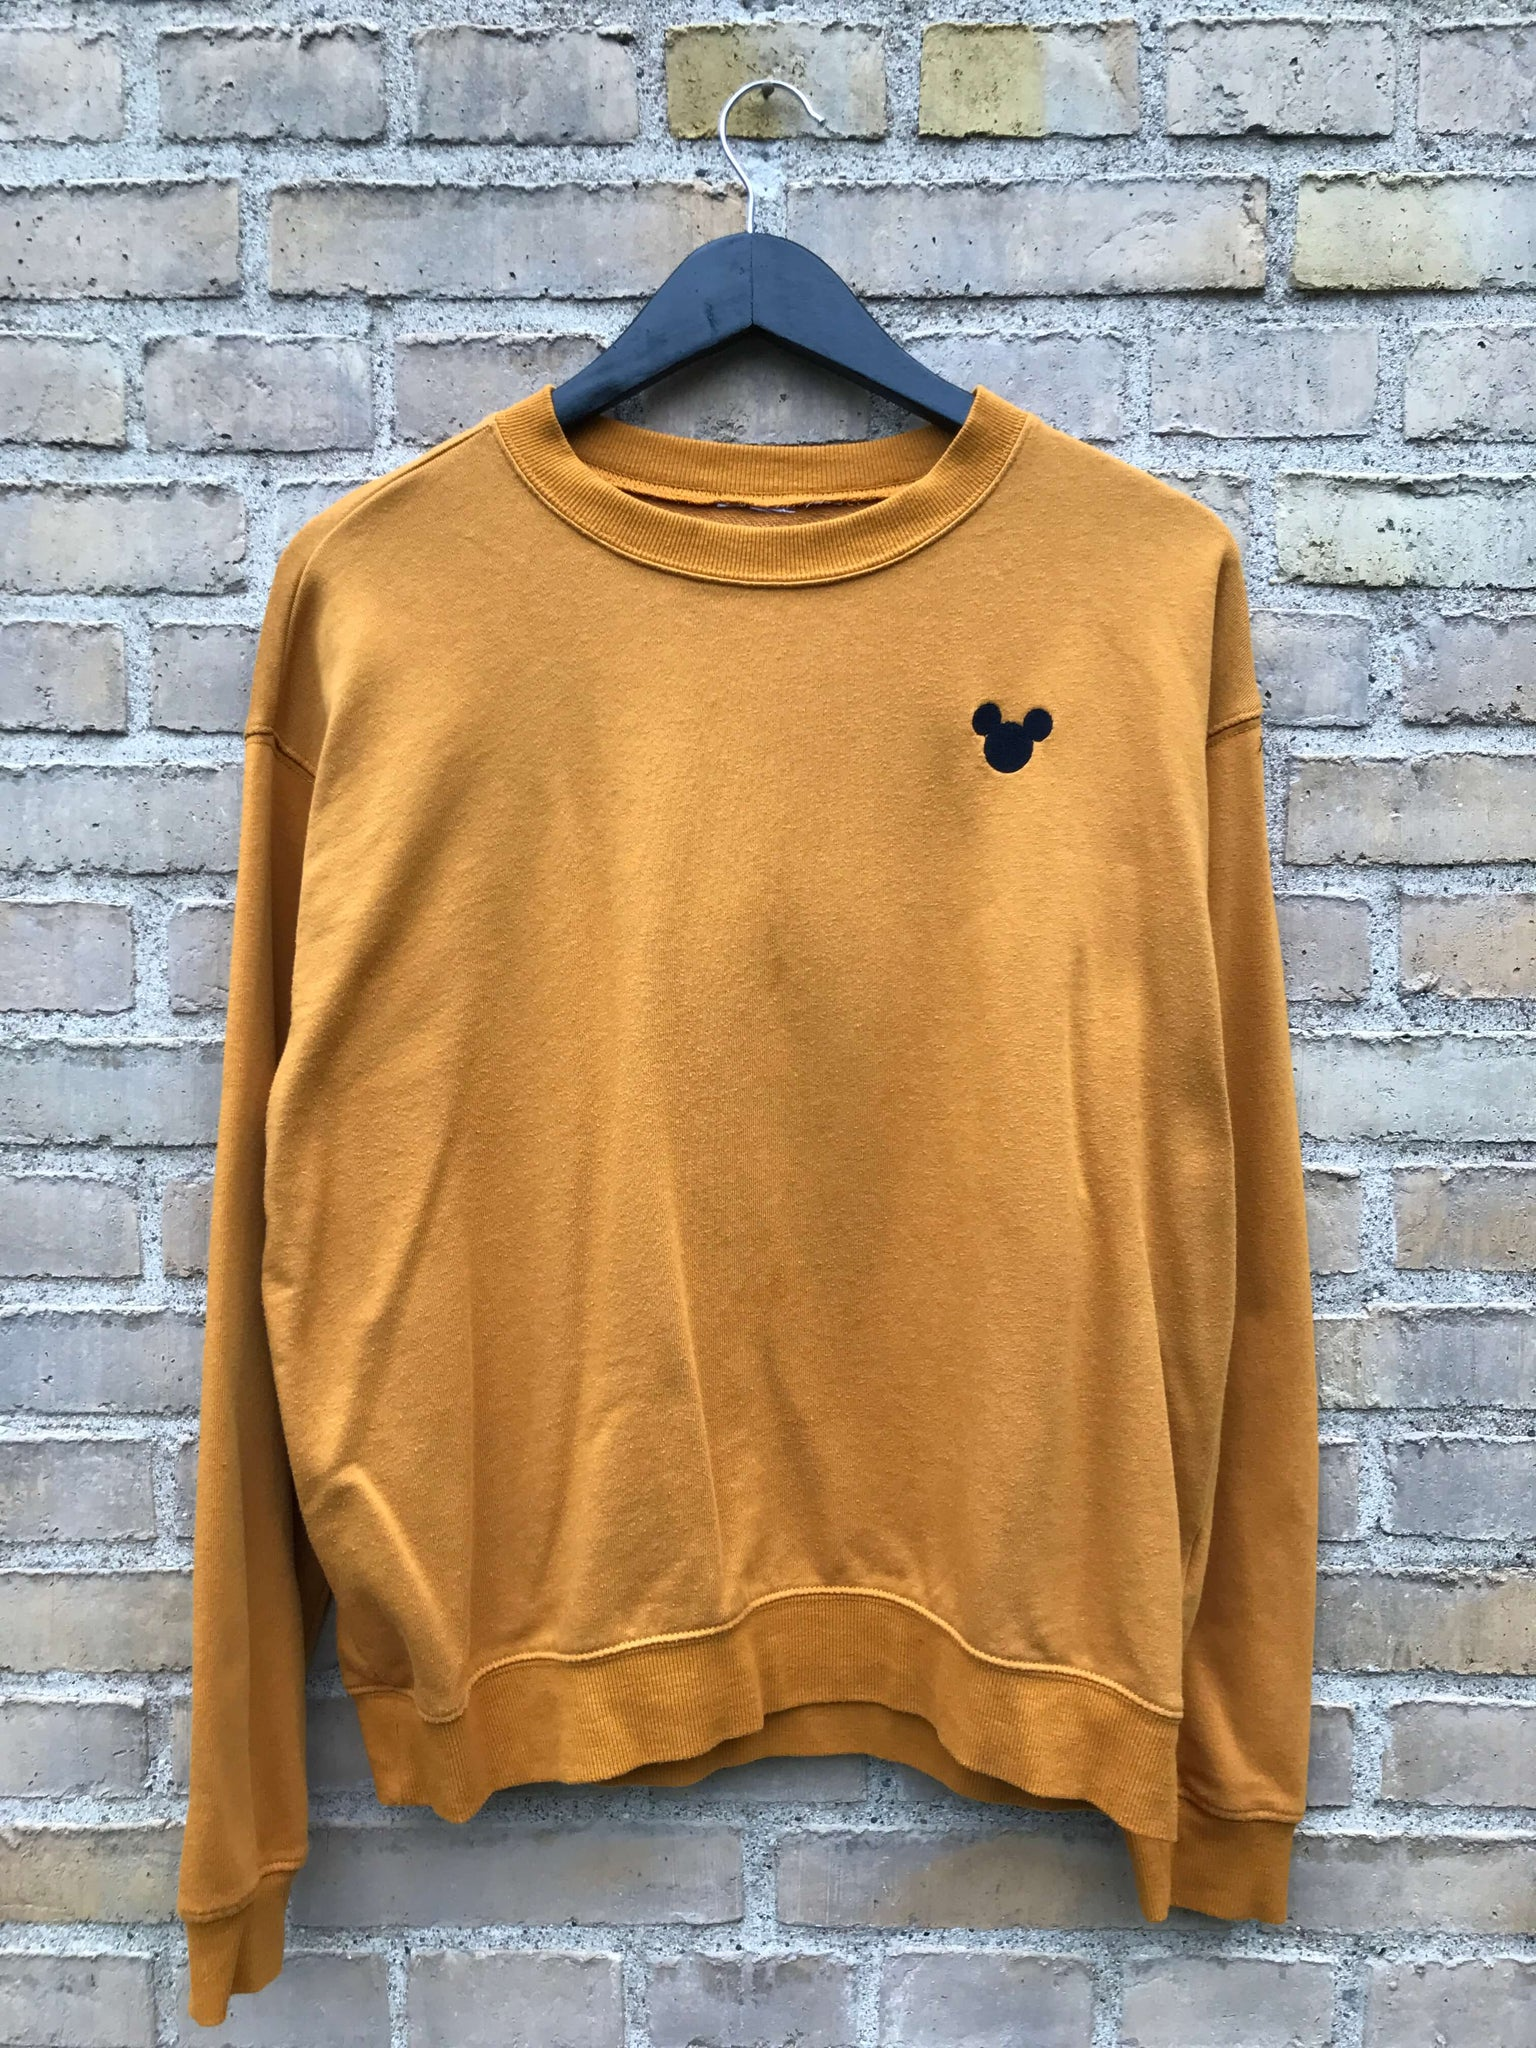 Vintage Mickey Mouse Sweatshirt - Small